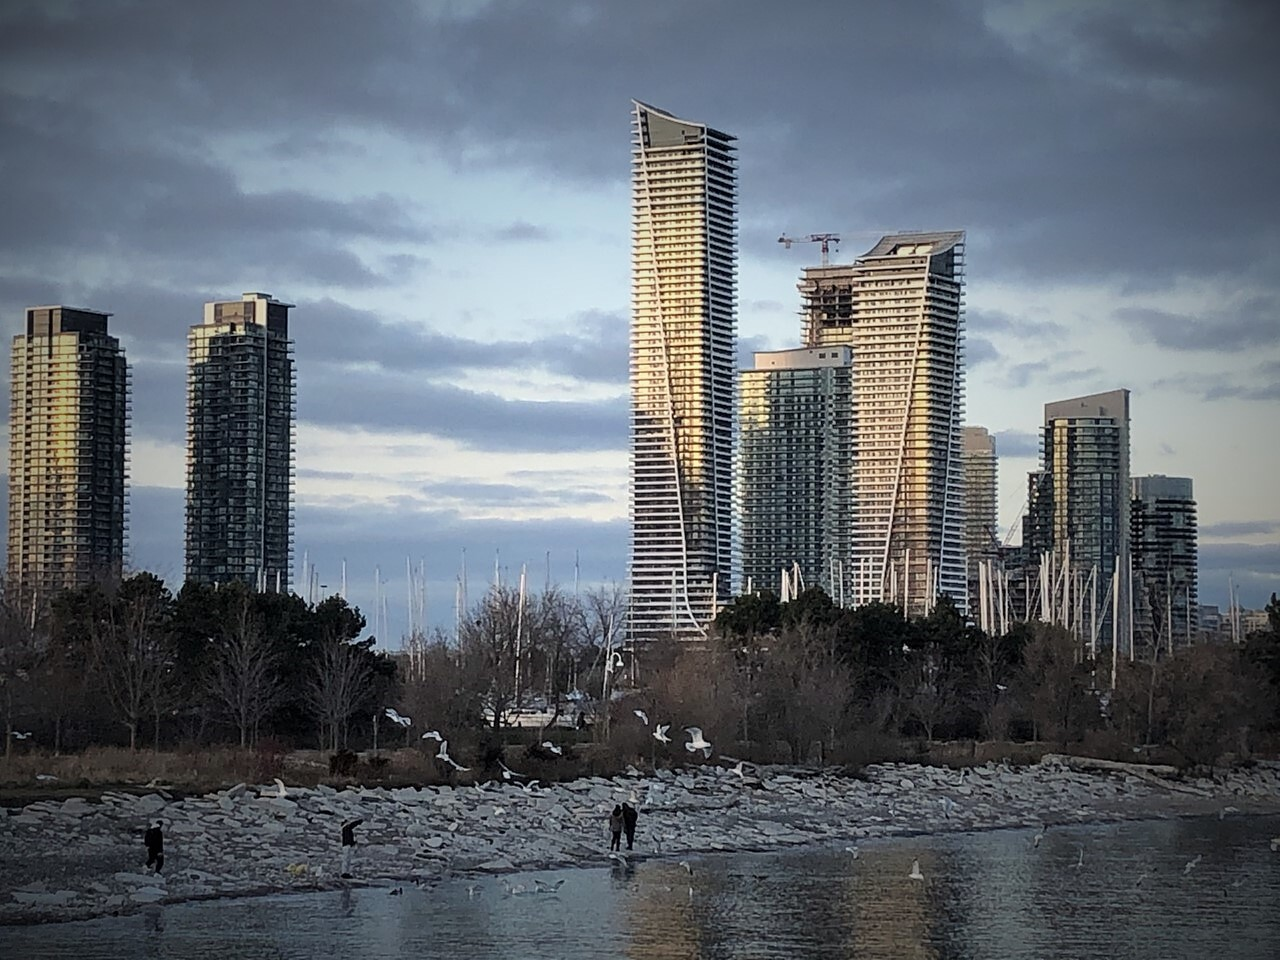 Daily Photo, Toronto, skyline, Humber Bay Shores